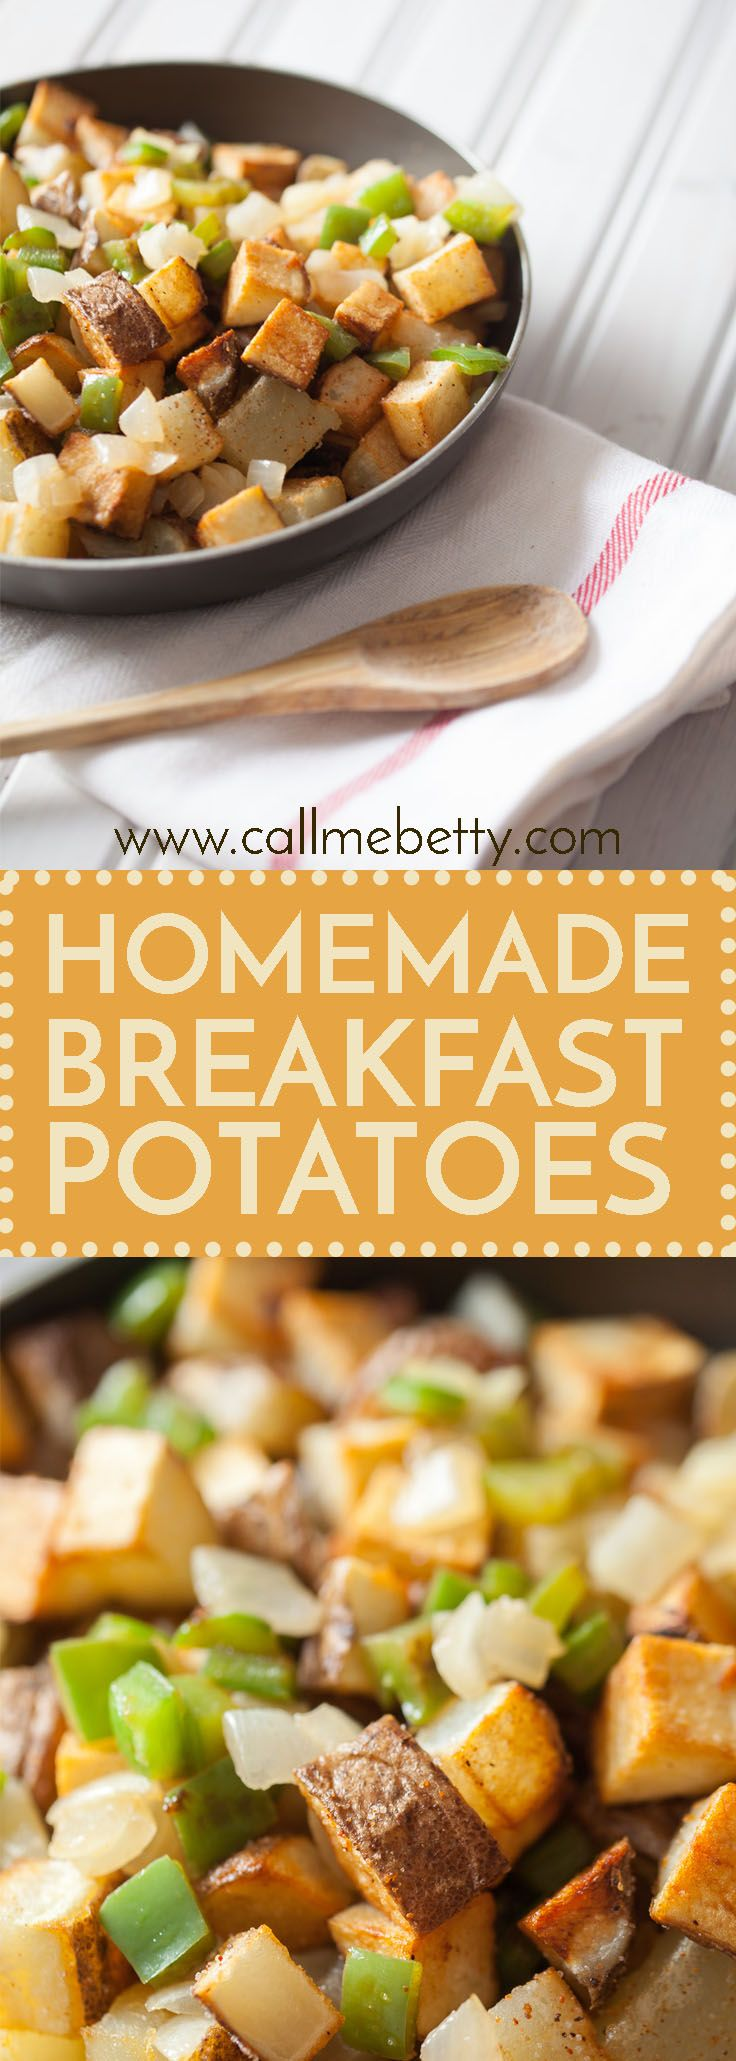 These homemade breakfast potatoes are perfectly crisp, restaurant style home fries from scratch are so easy, this recipe is a family favorite!